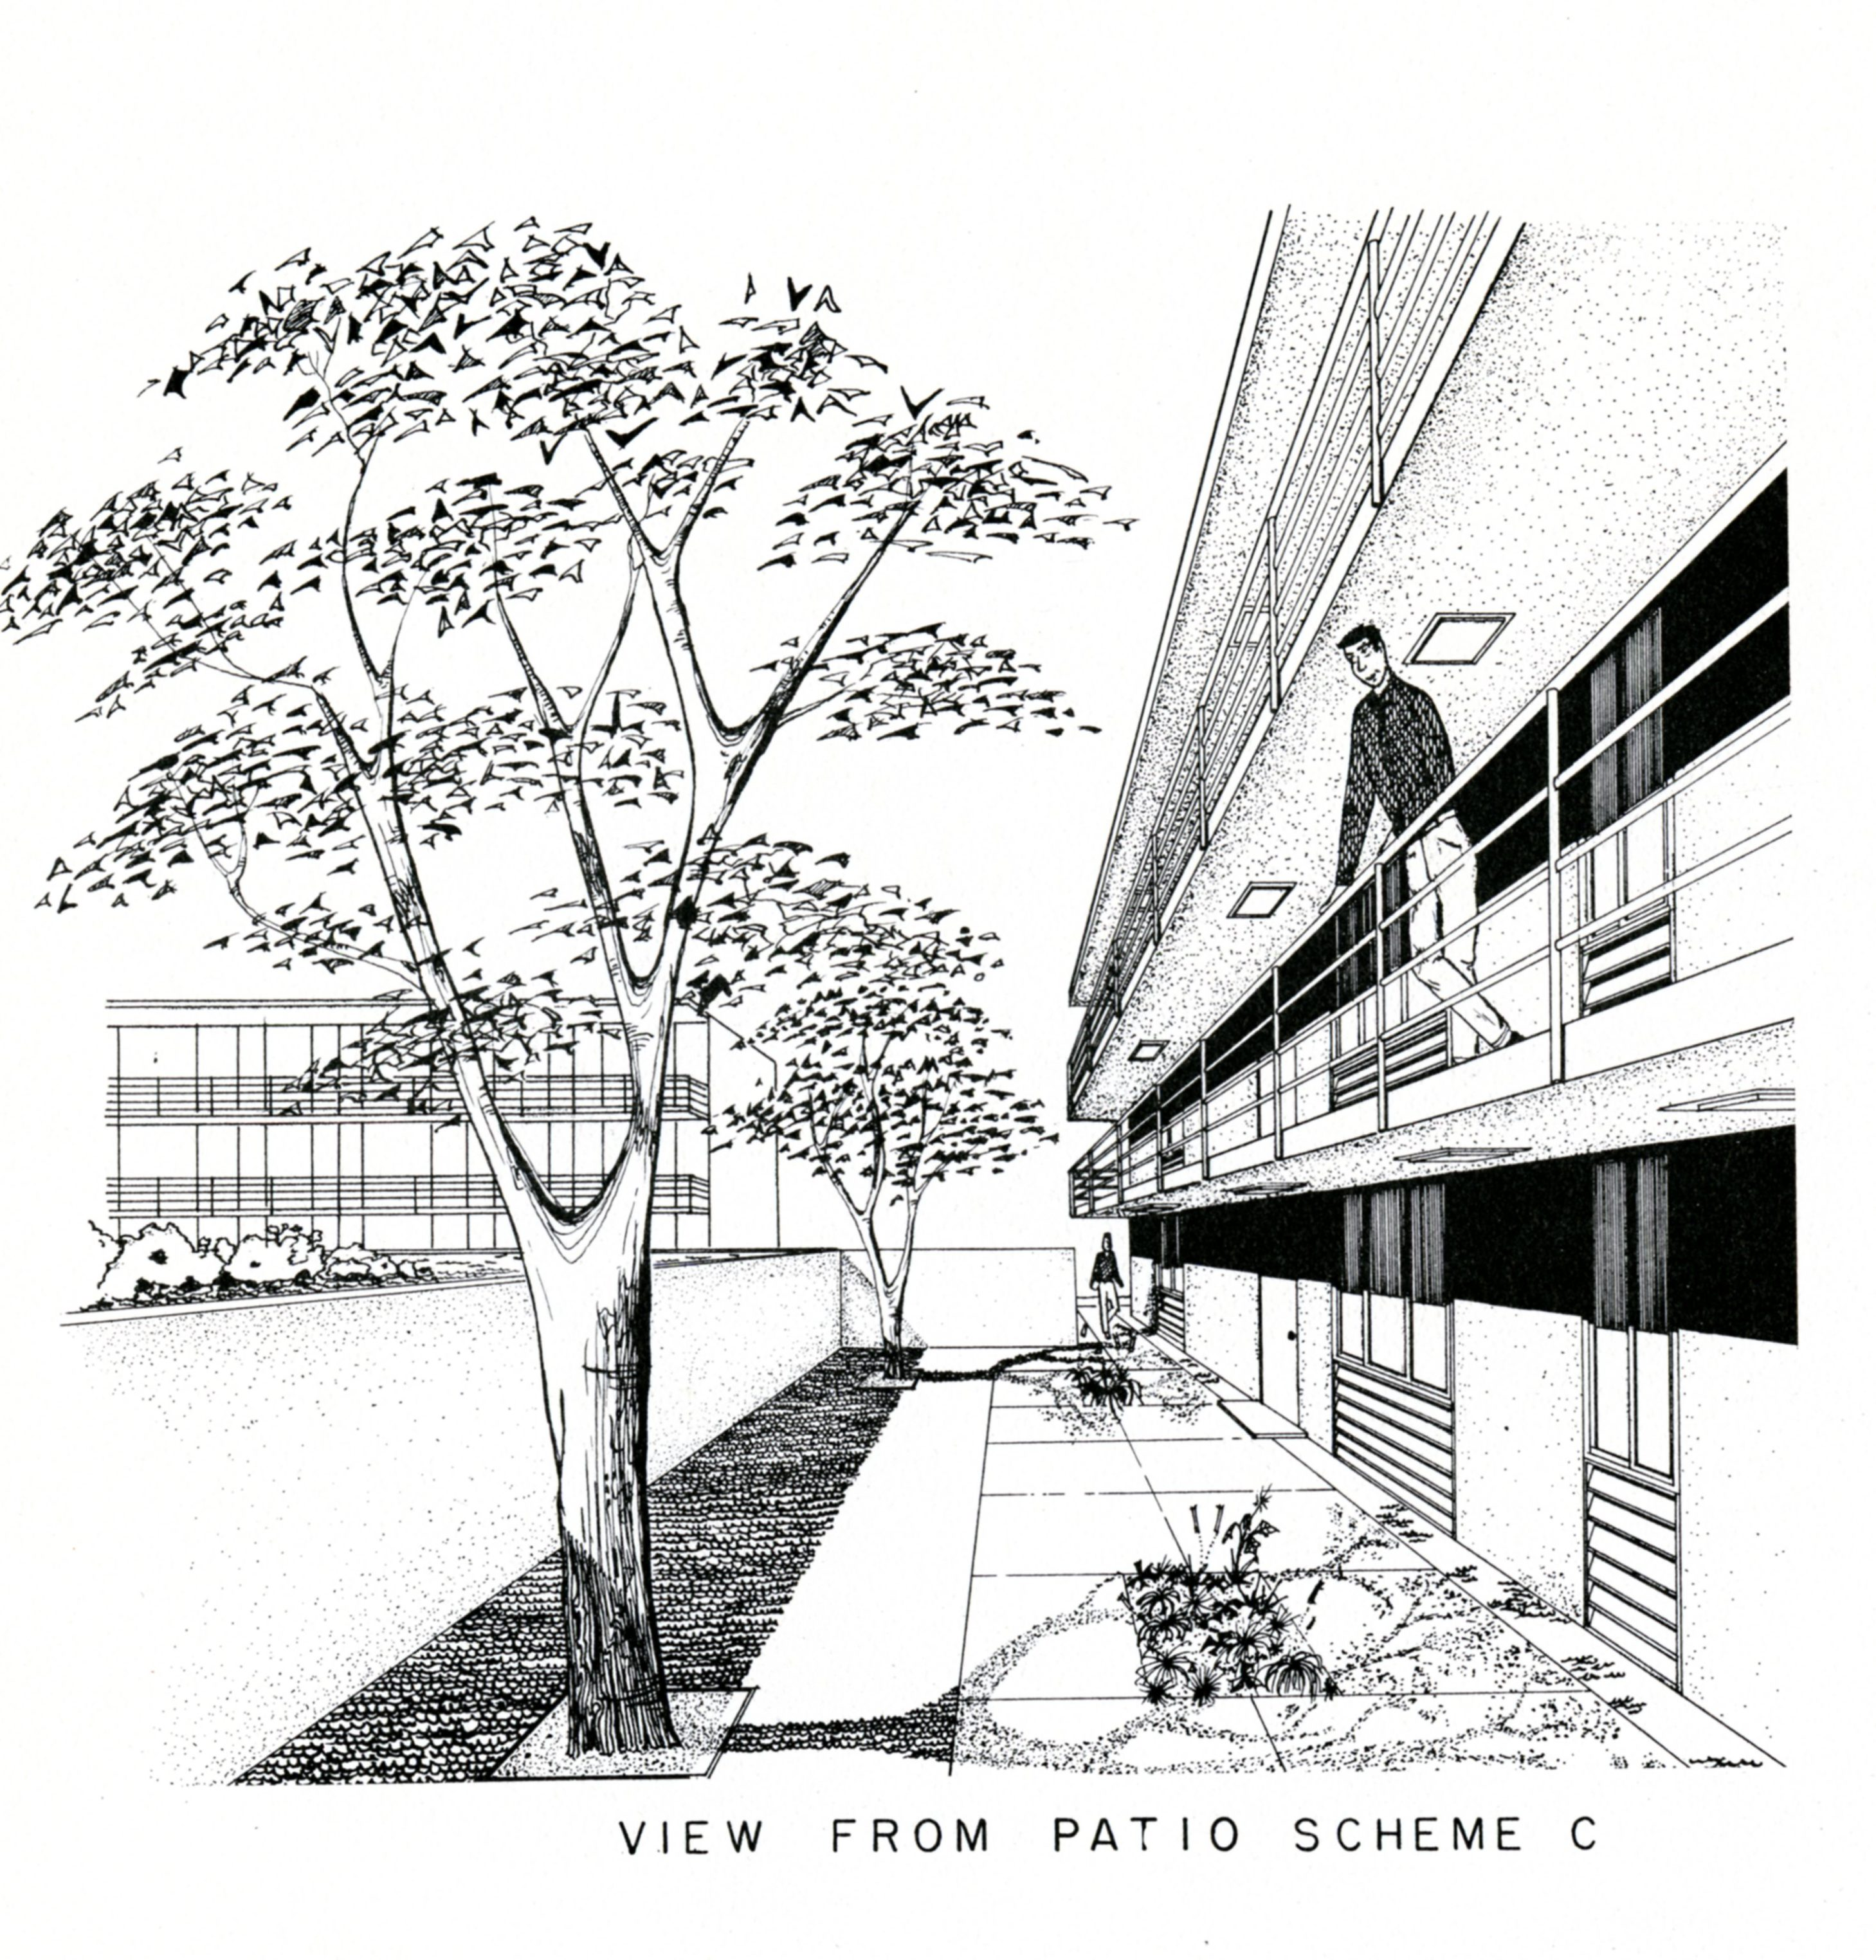 Low Cost Housing for Urban Renewal: Architectural Research